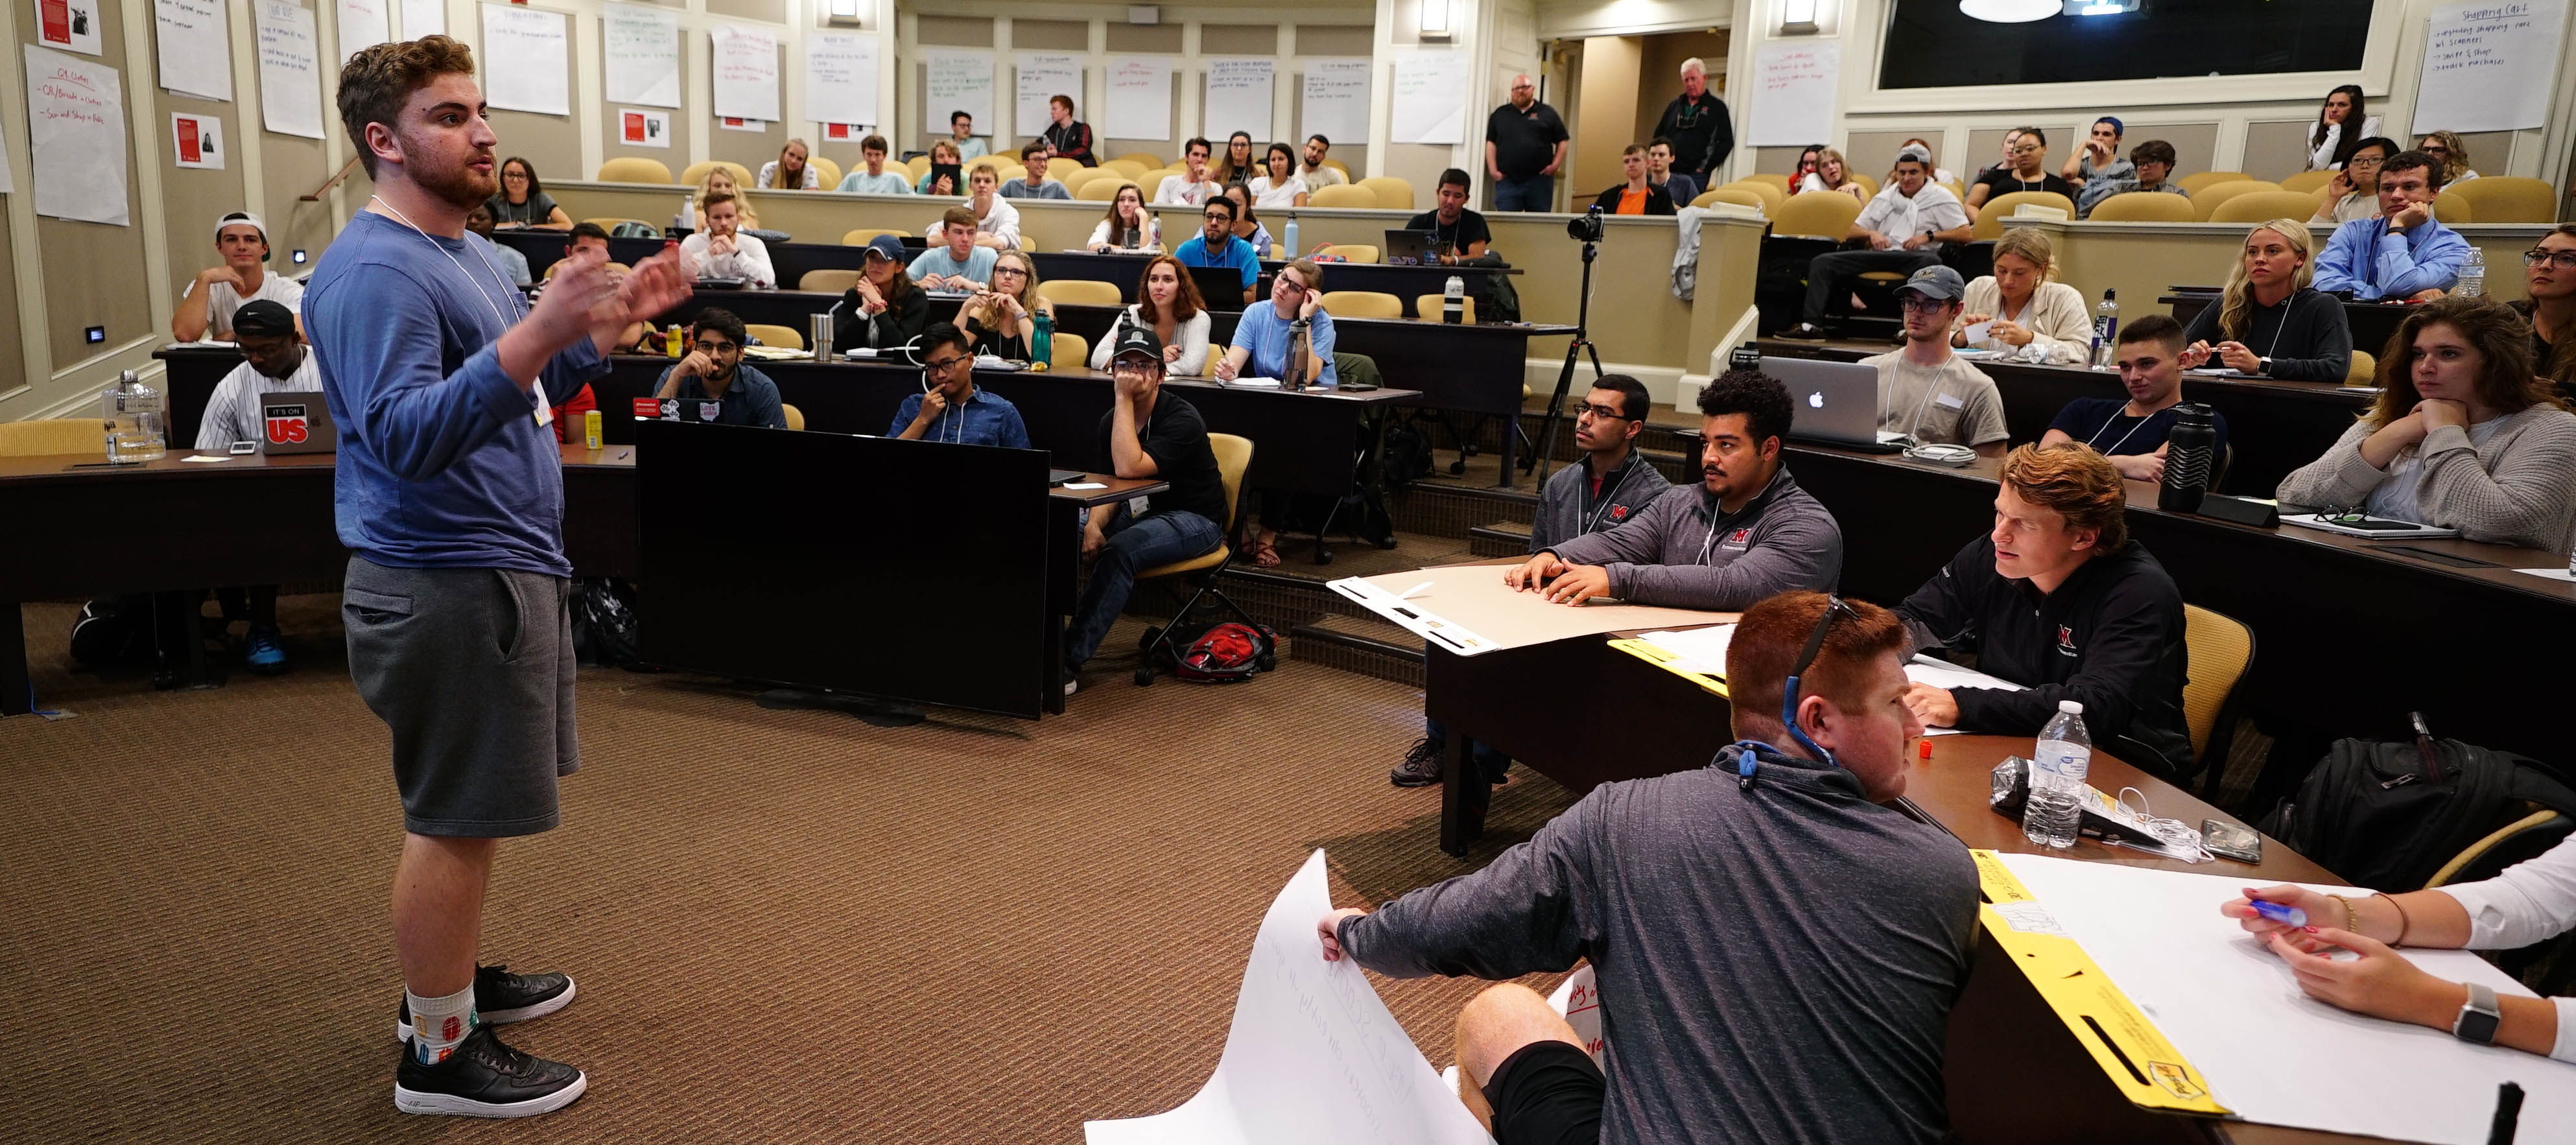 Student makes pitch to crowd at Startup Weekend